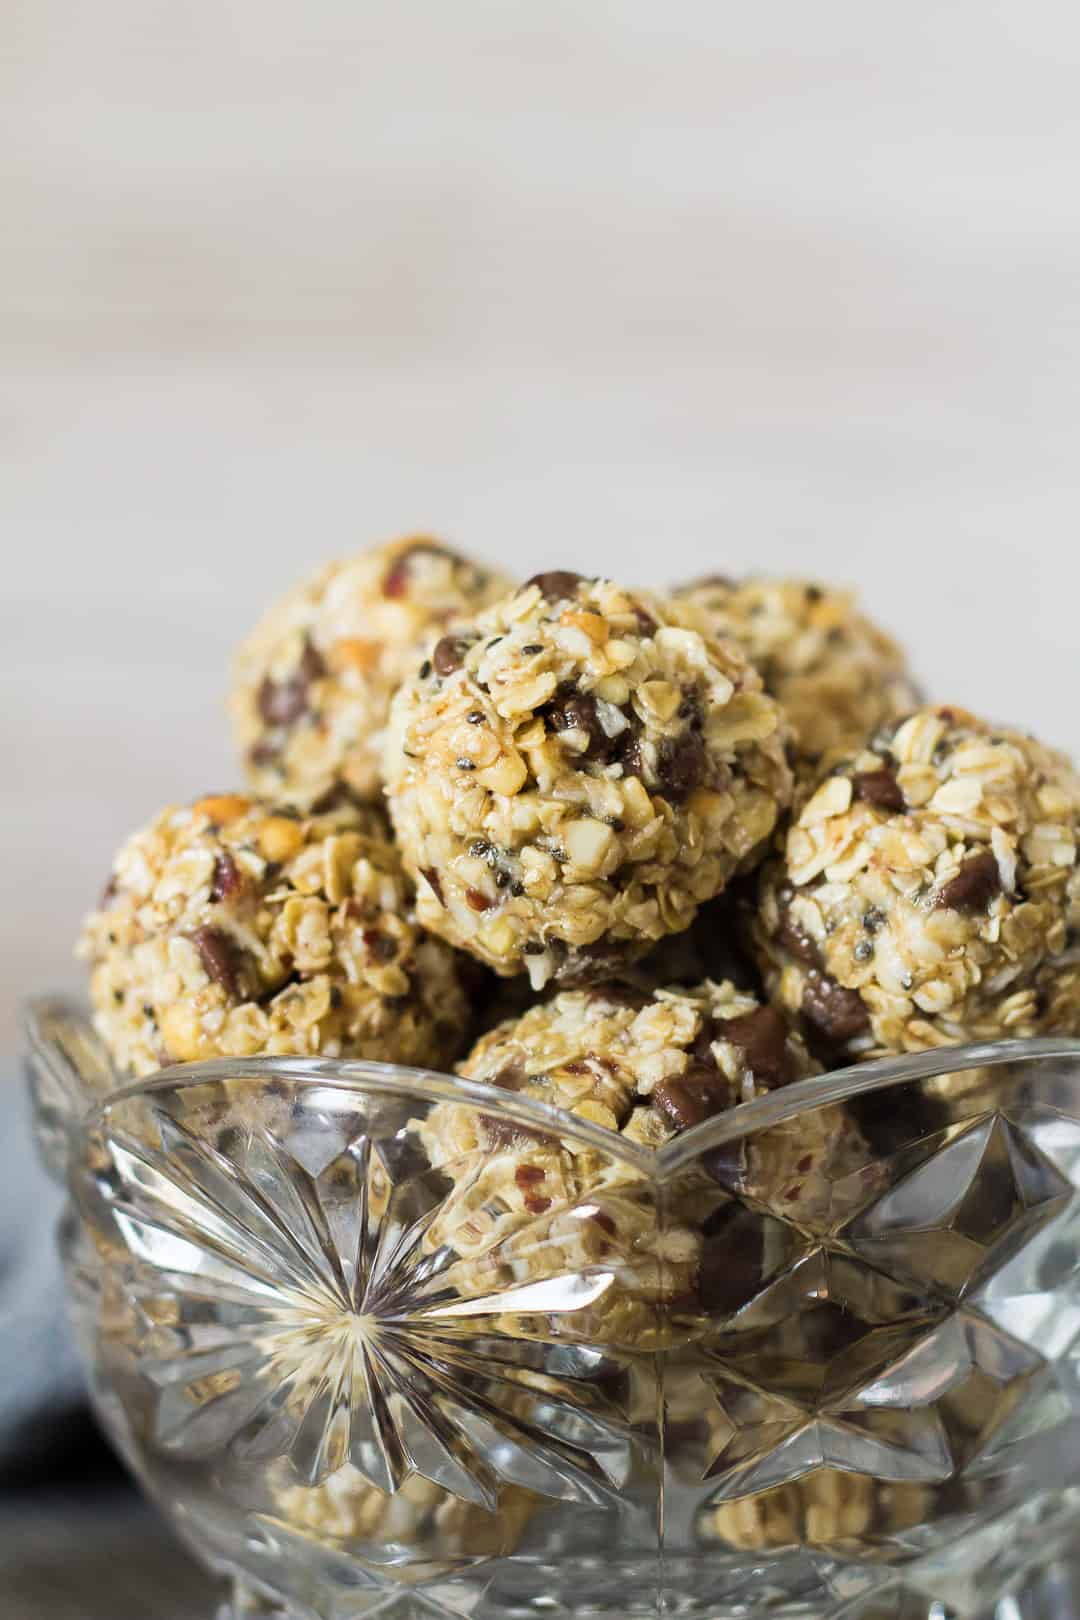 No-Bake Peanut Butter Coconut Energy Bites in a small glass bowl.